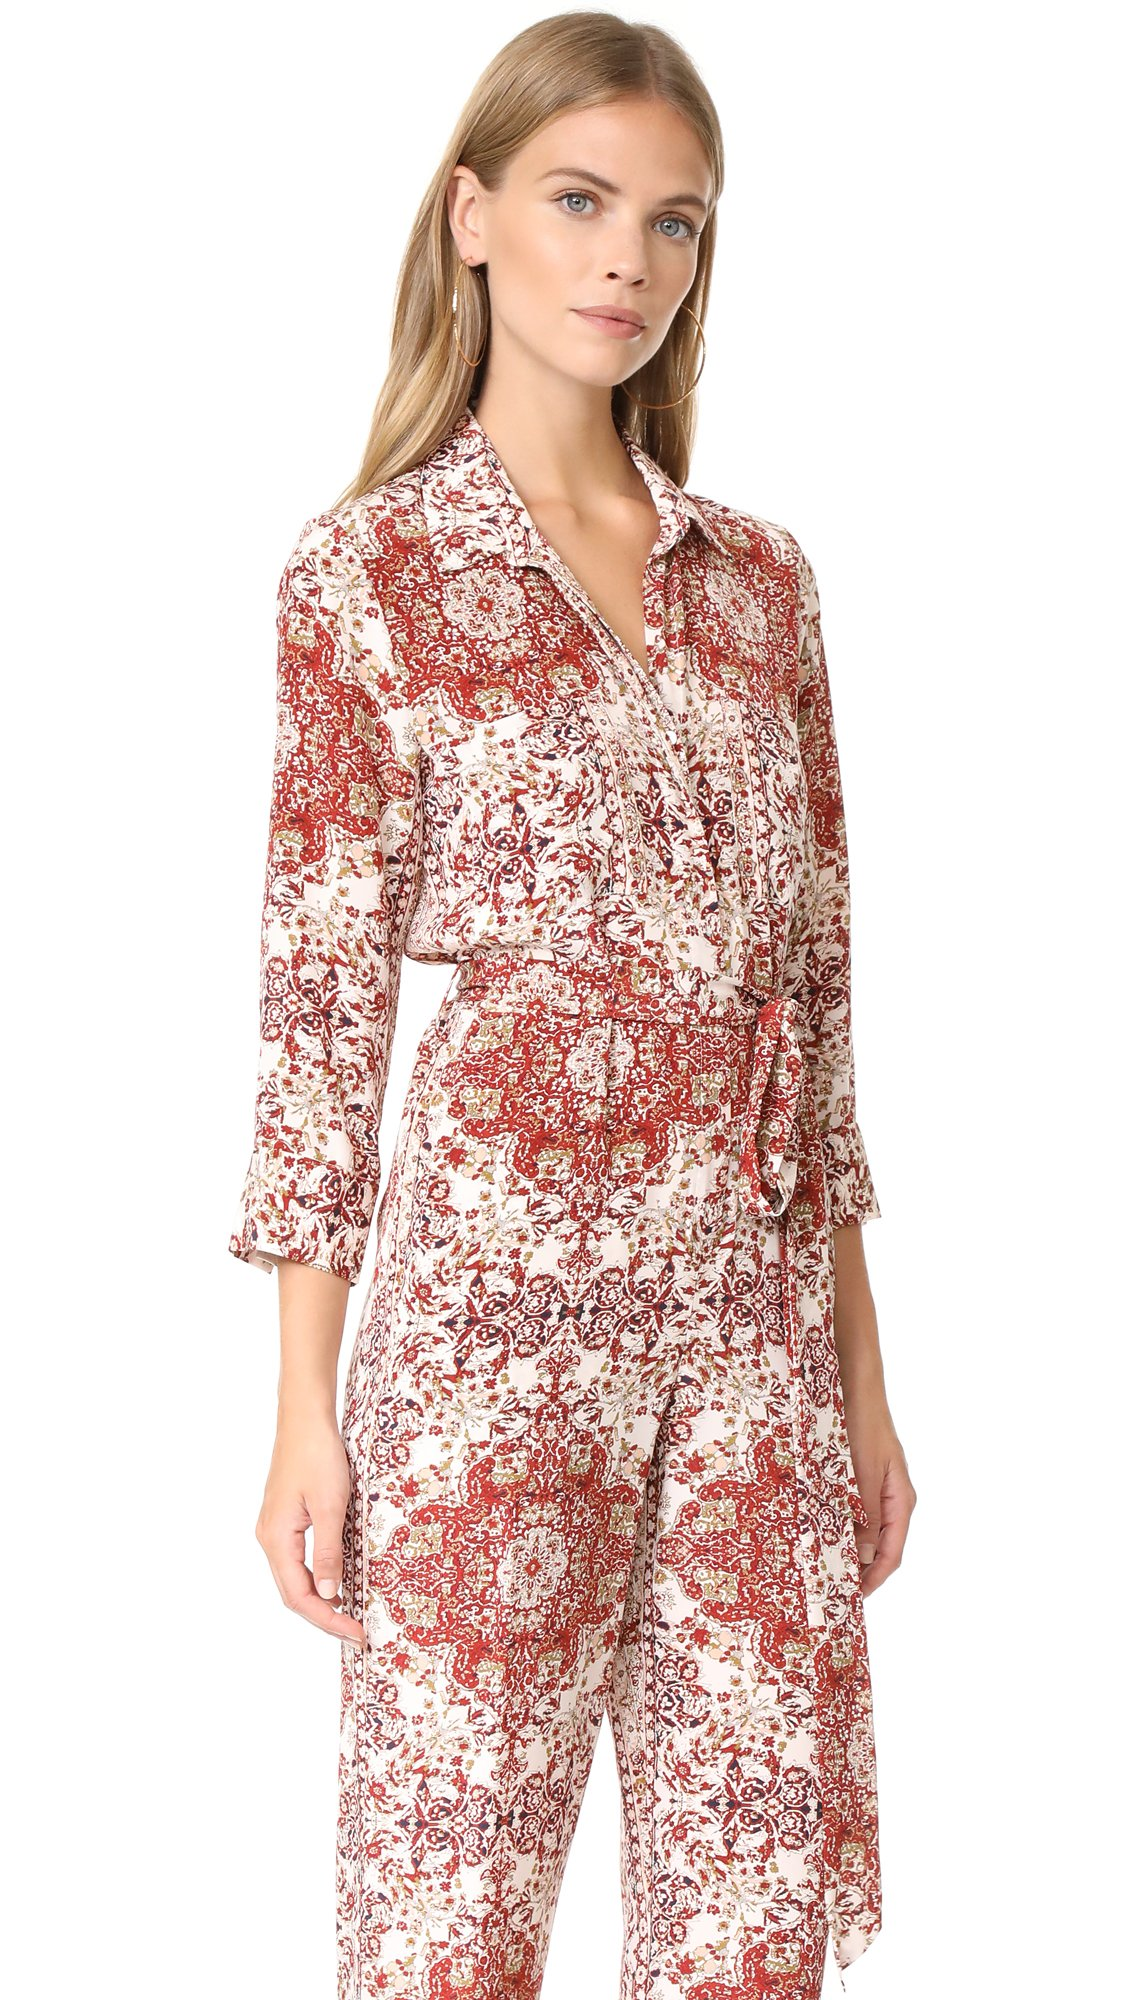 L'AGENCE Women's Delia 3/4 Sleeve Jumpsuit, Rhubarb Multi, 10 by L'agence (Image #3)